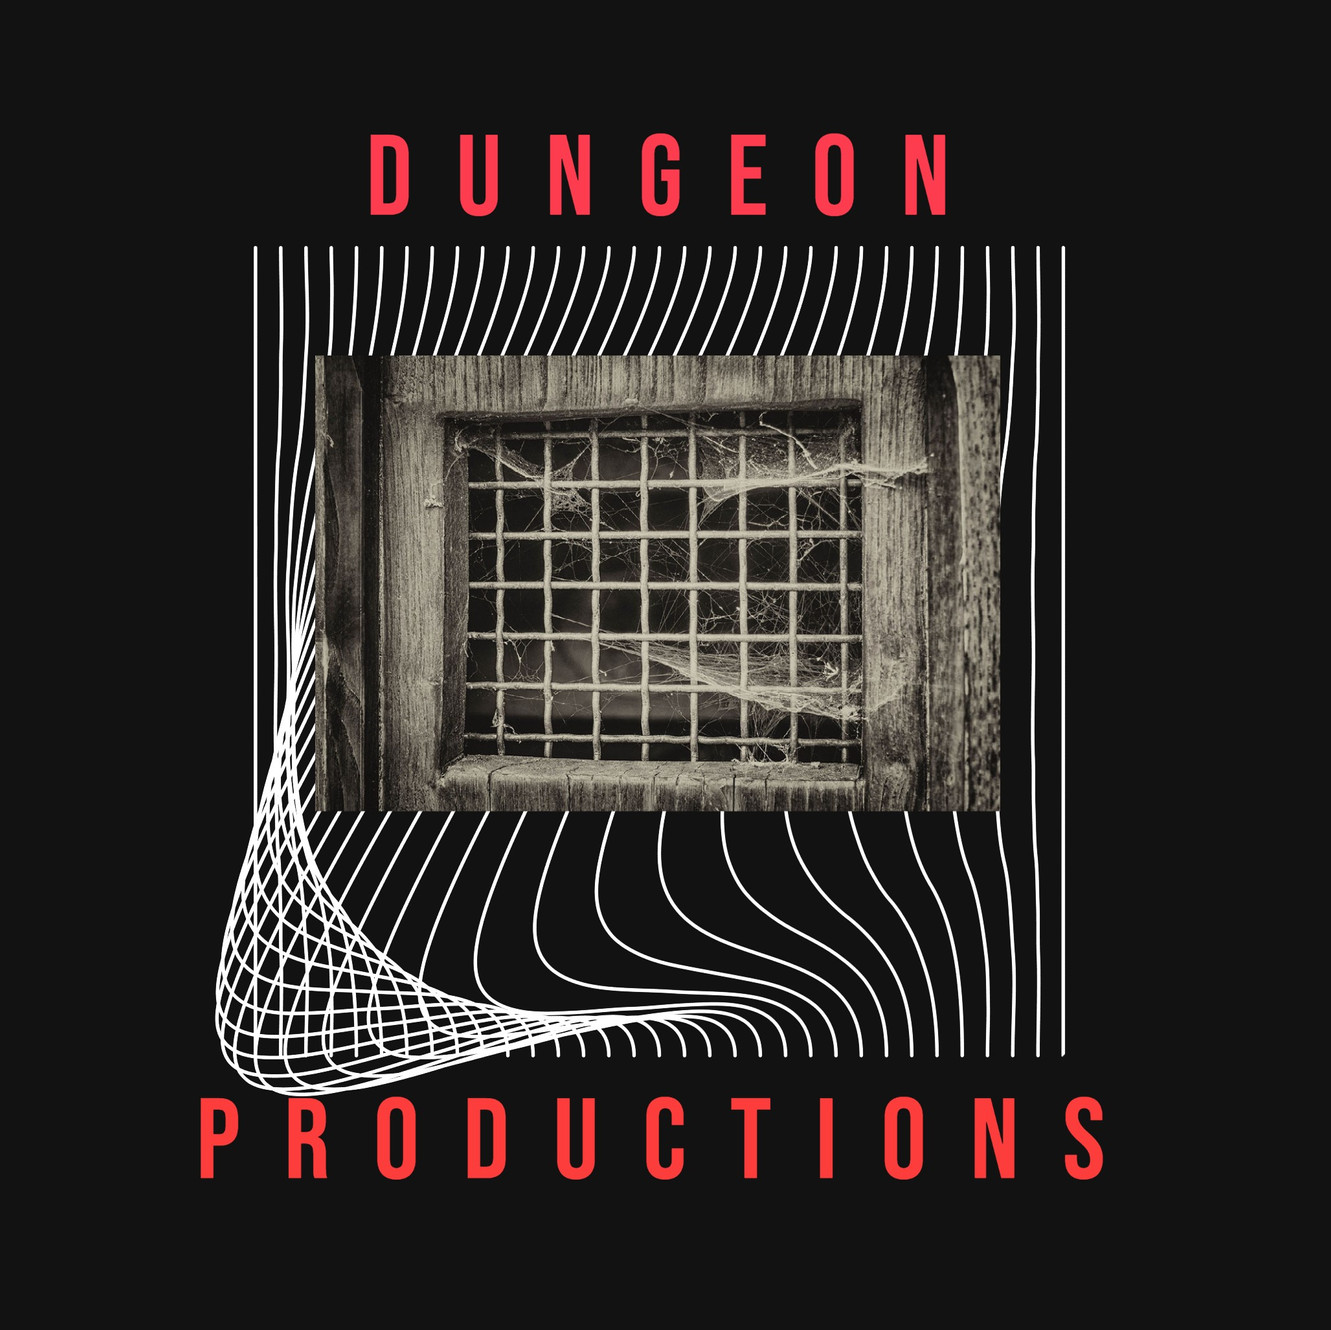 About Us & Policies | Dungeon Productions